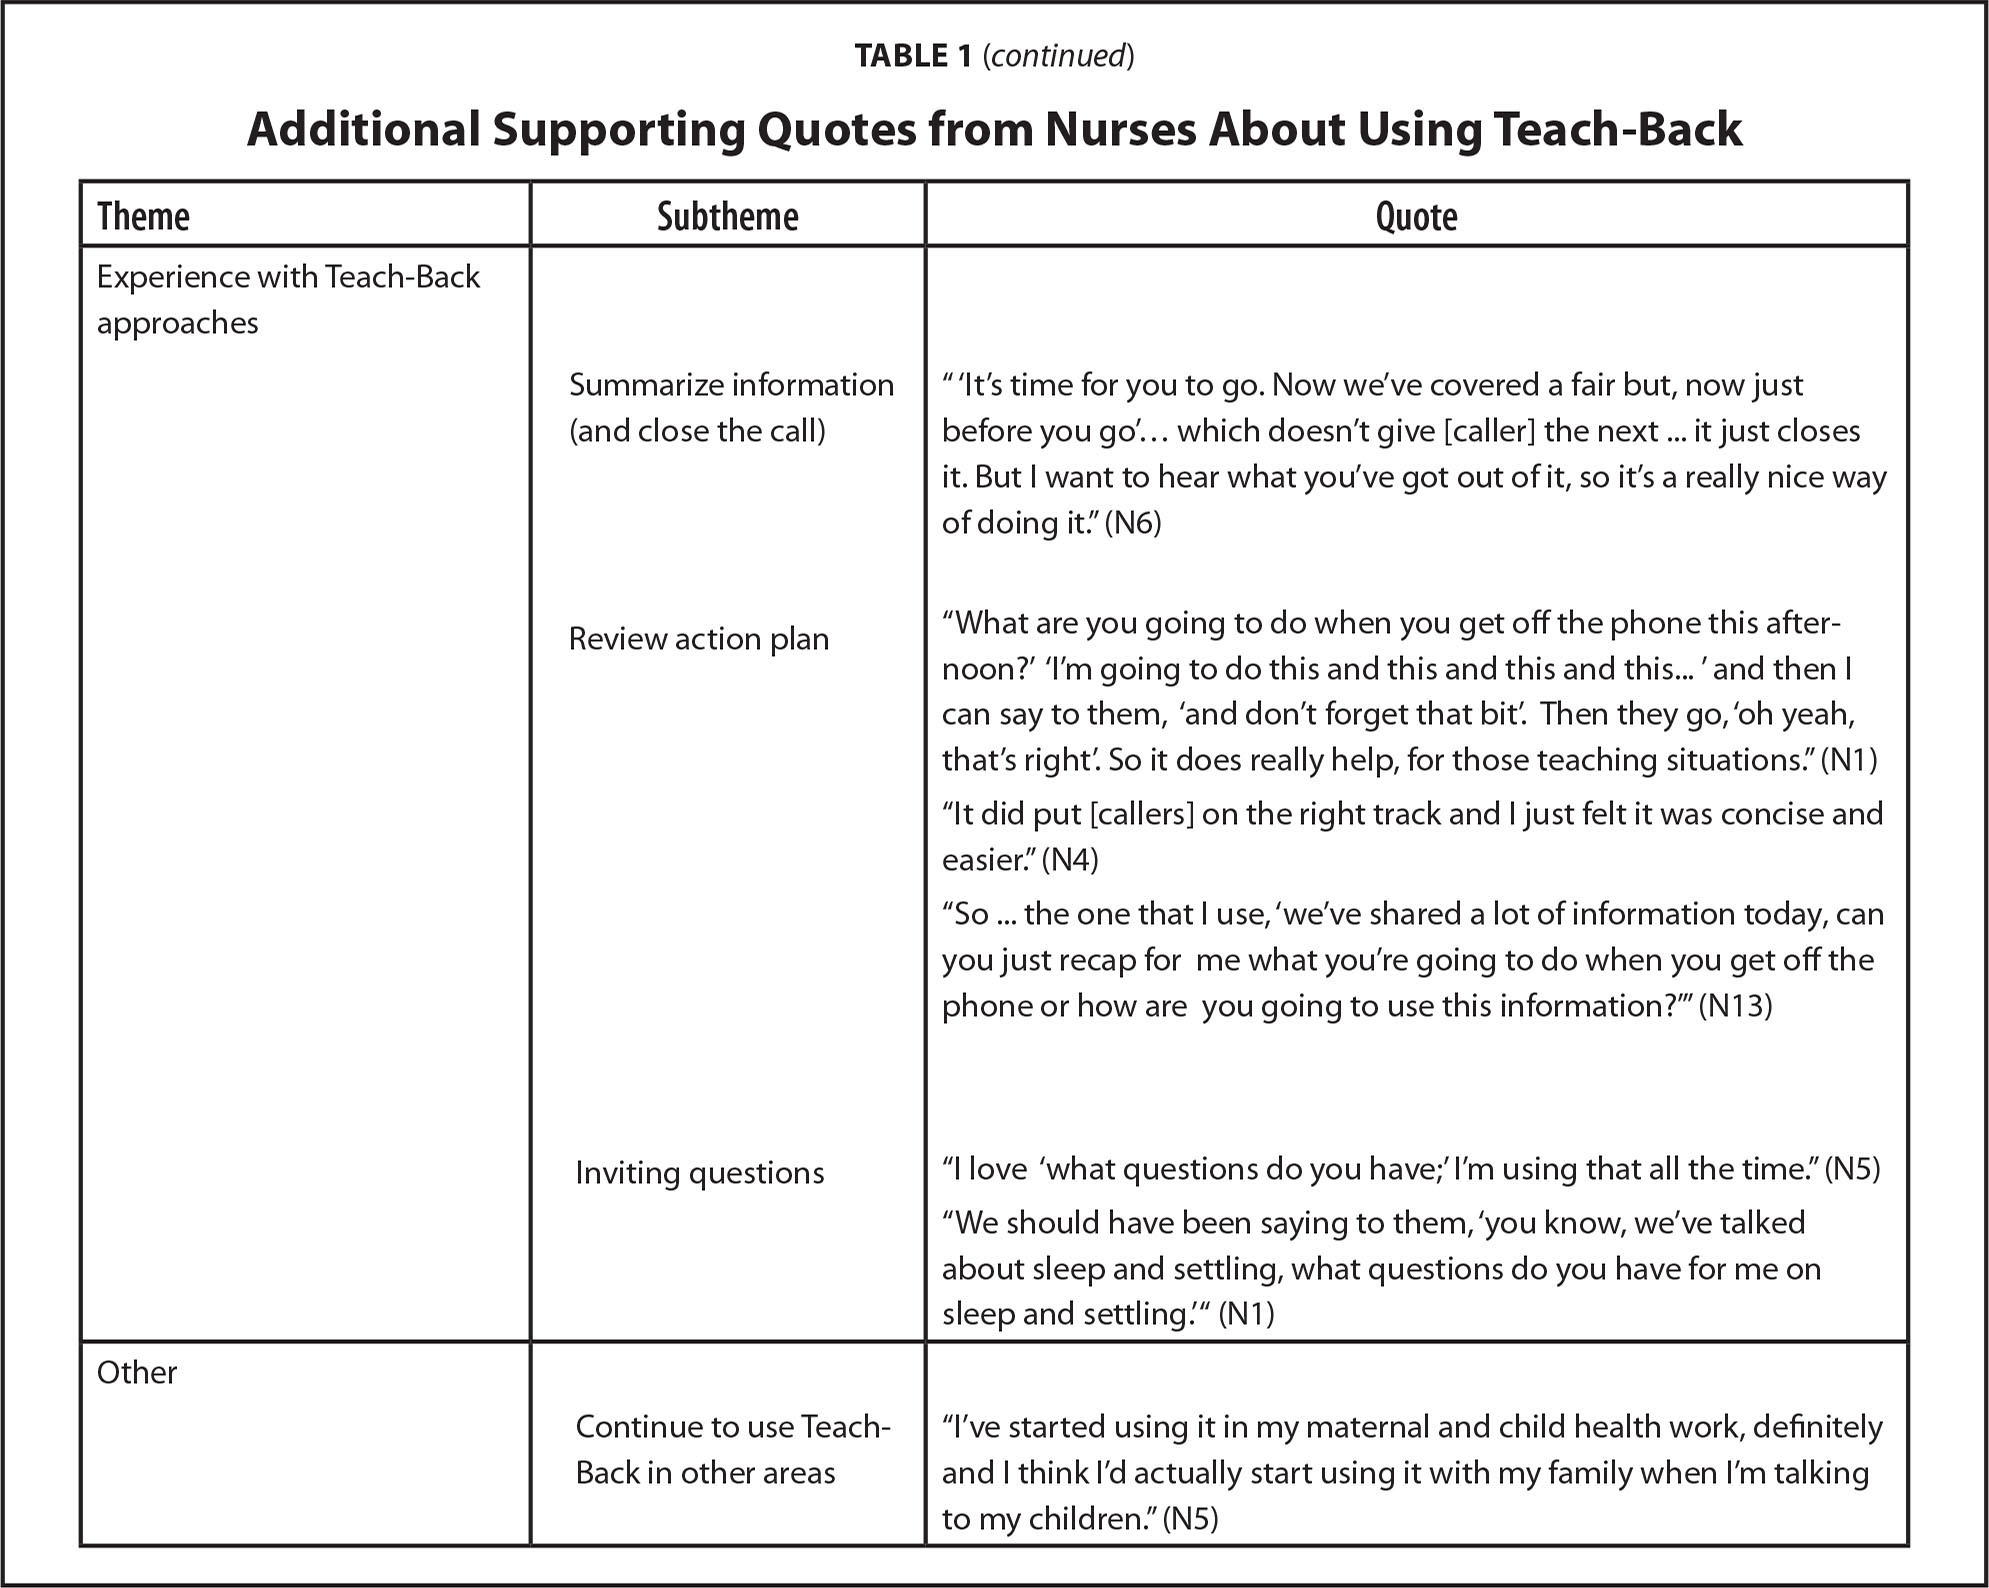 Additional Supporting Quotes from Nurses About Using Teach-Back